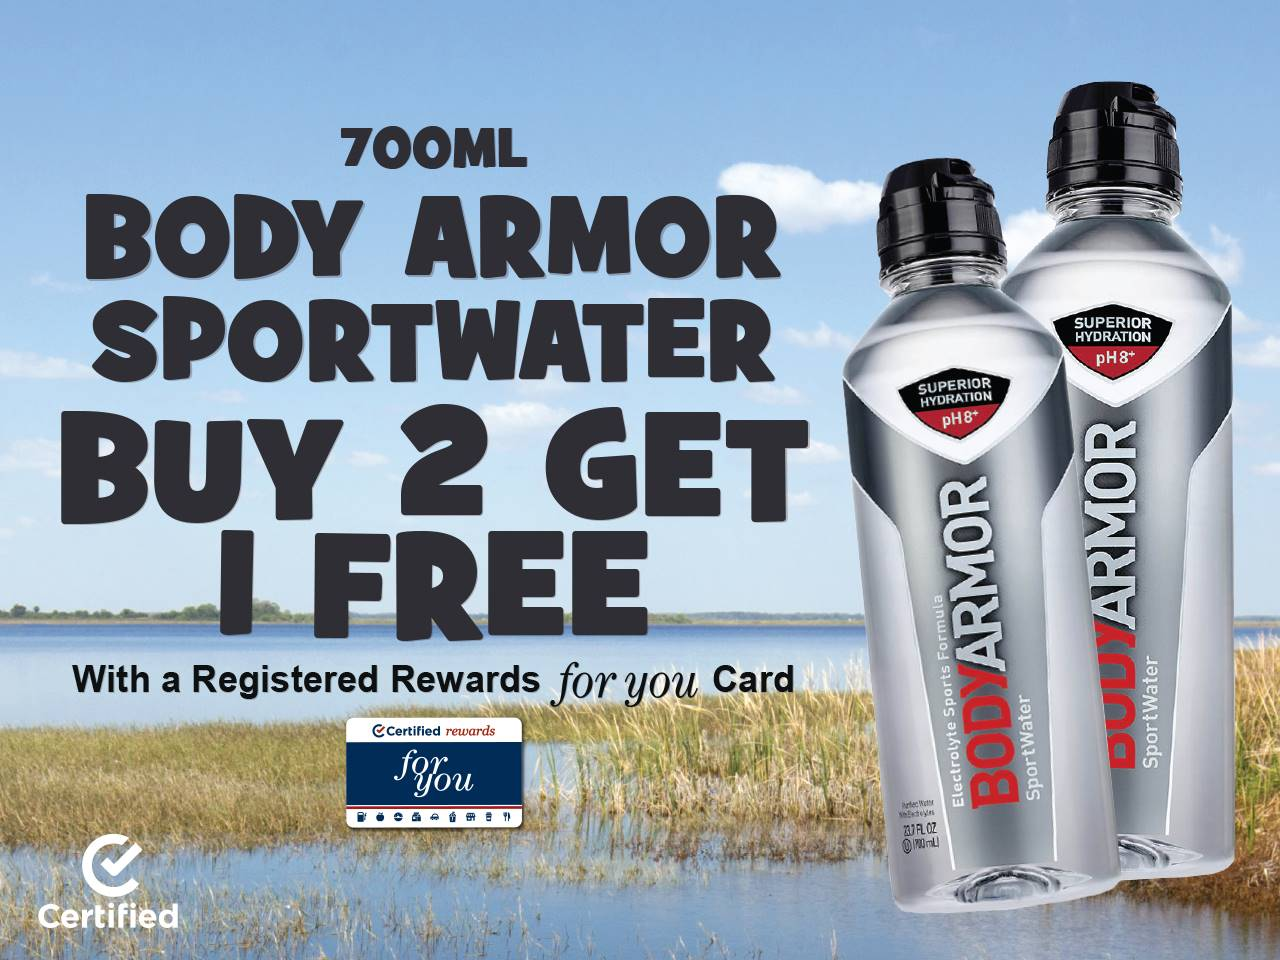 700mL Body Armor SportWater Buy 2, Get 1 Free with Registered Rewards For You Card